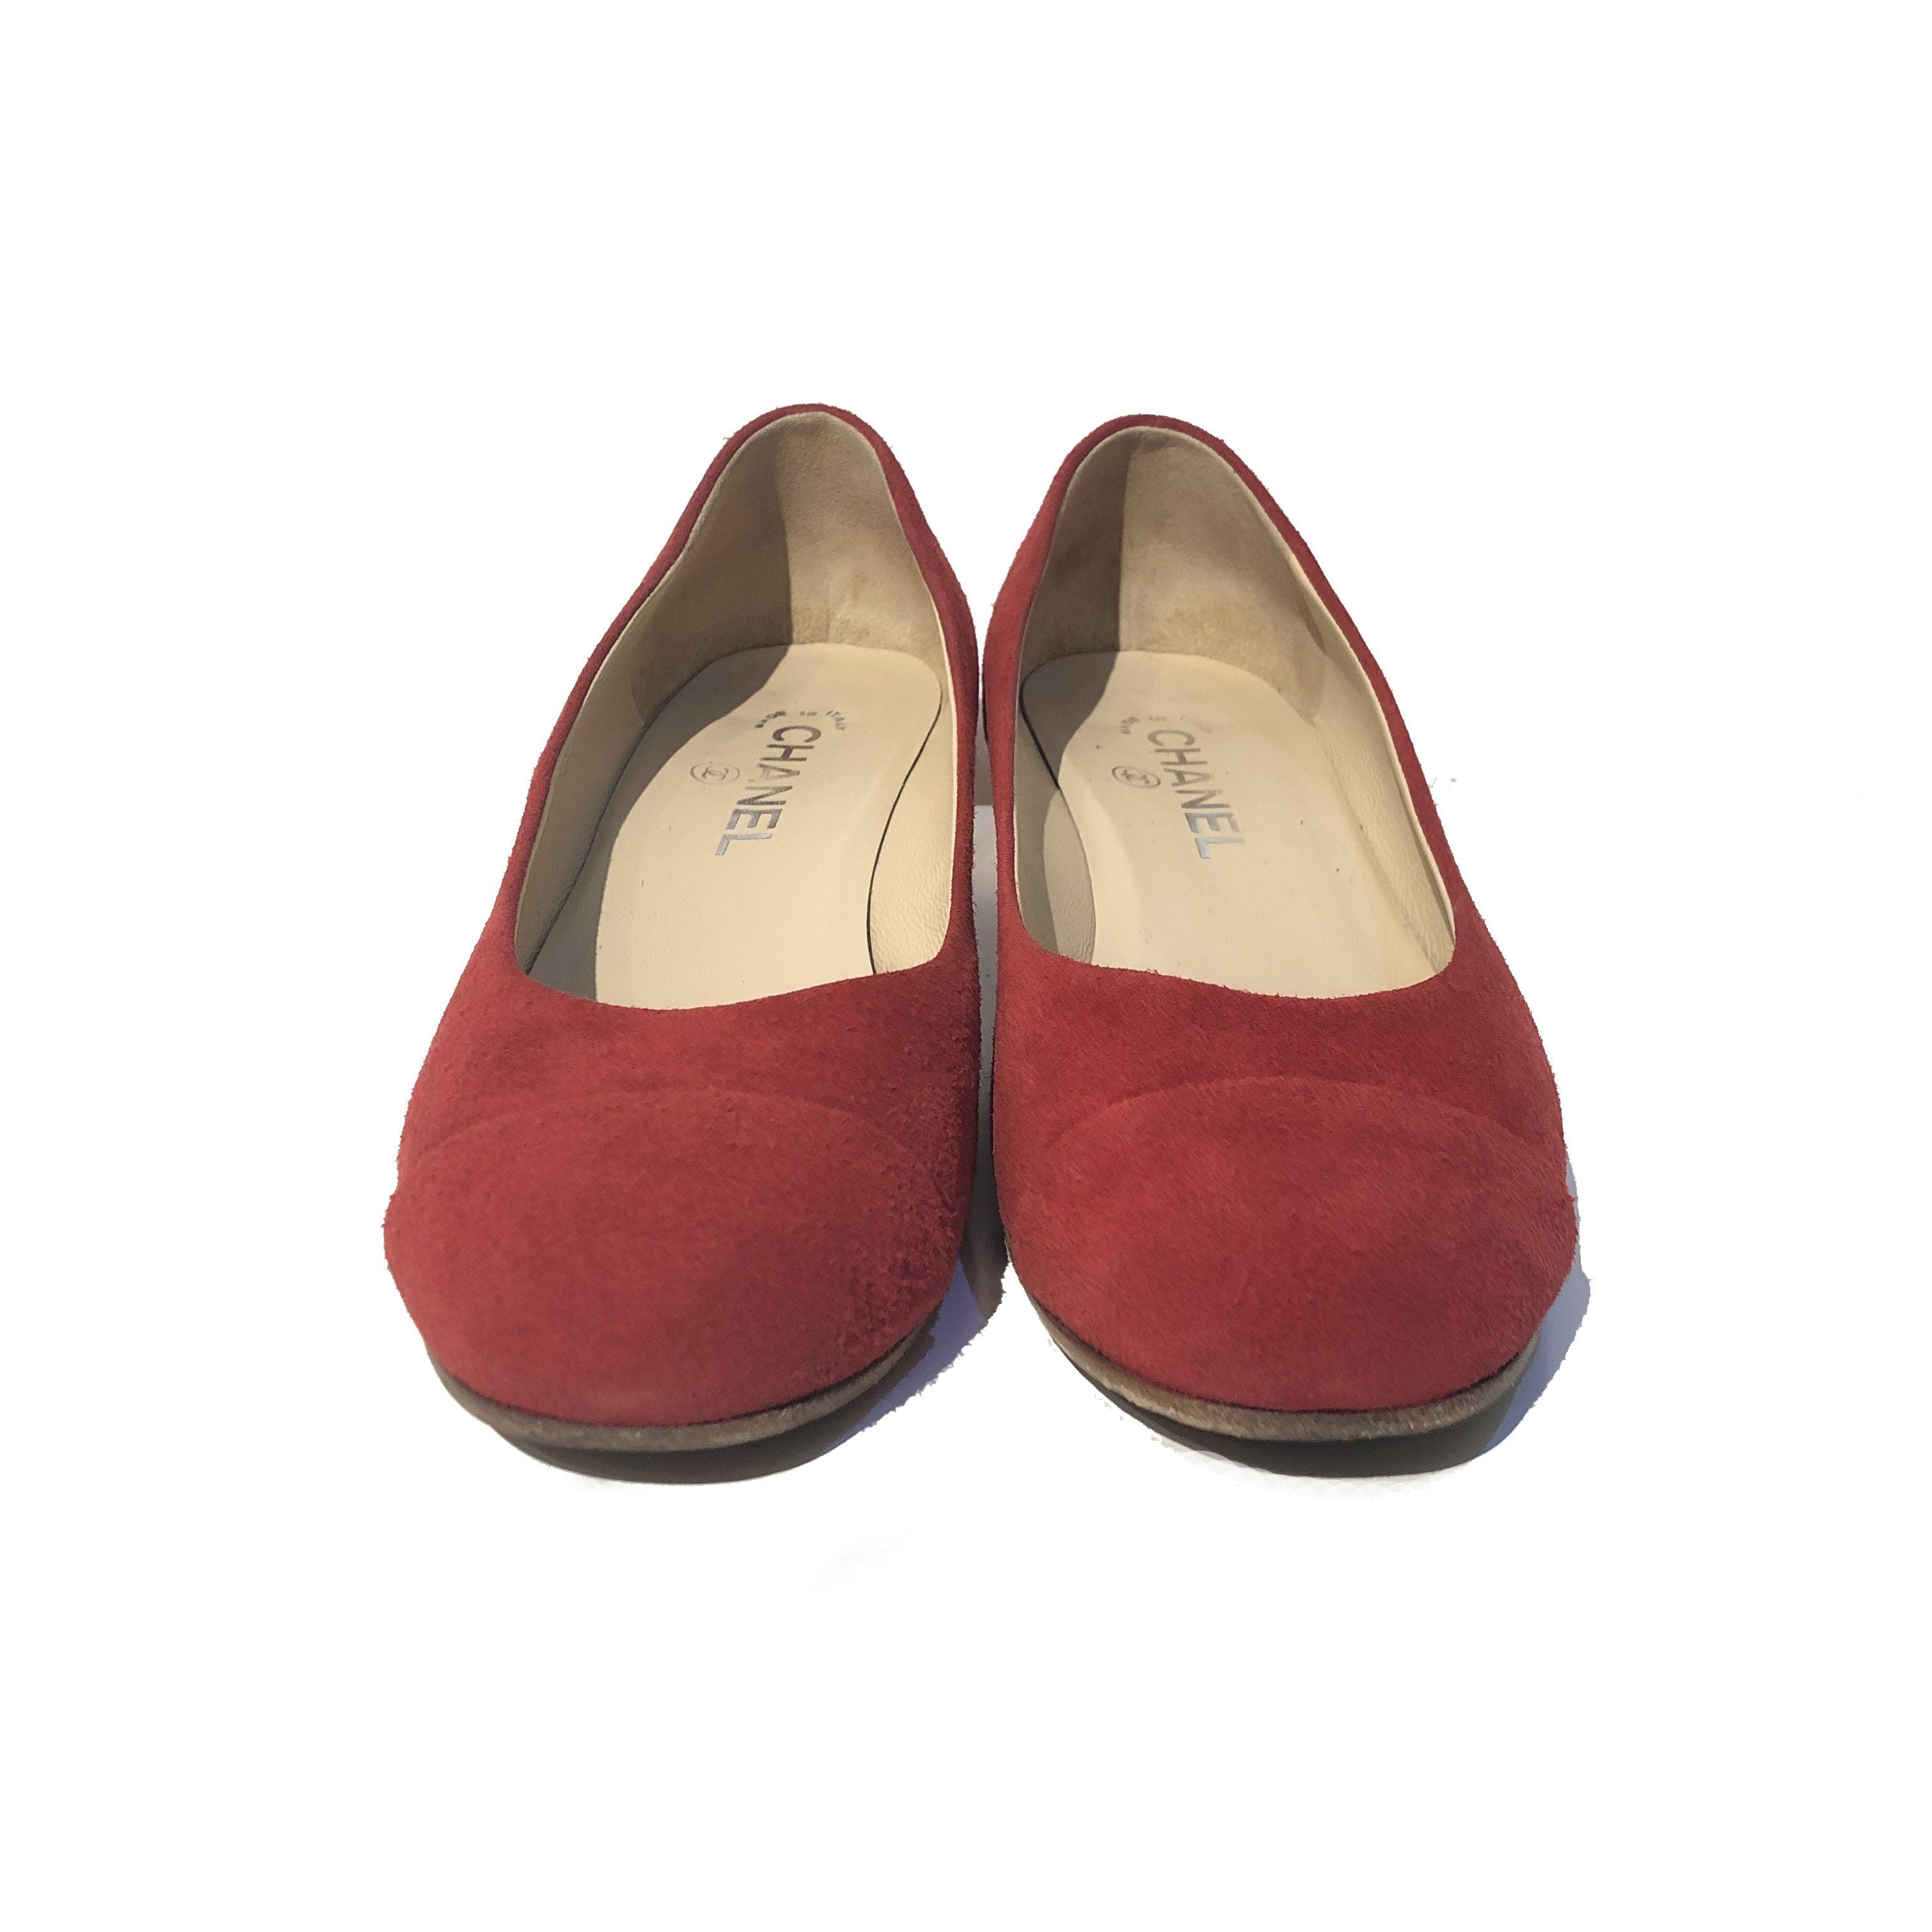 Chanel Red Suede Goat Skin Cap Toe Low Heels Pumps